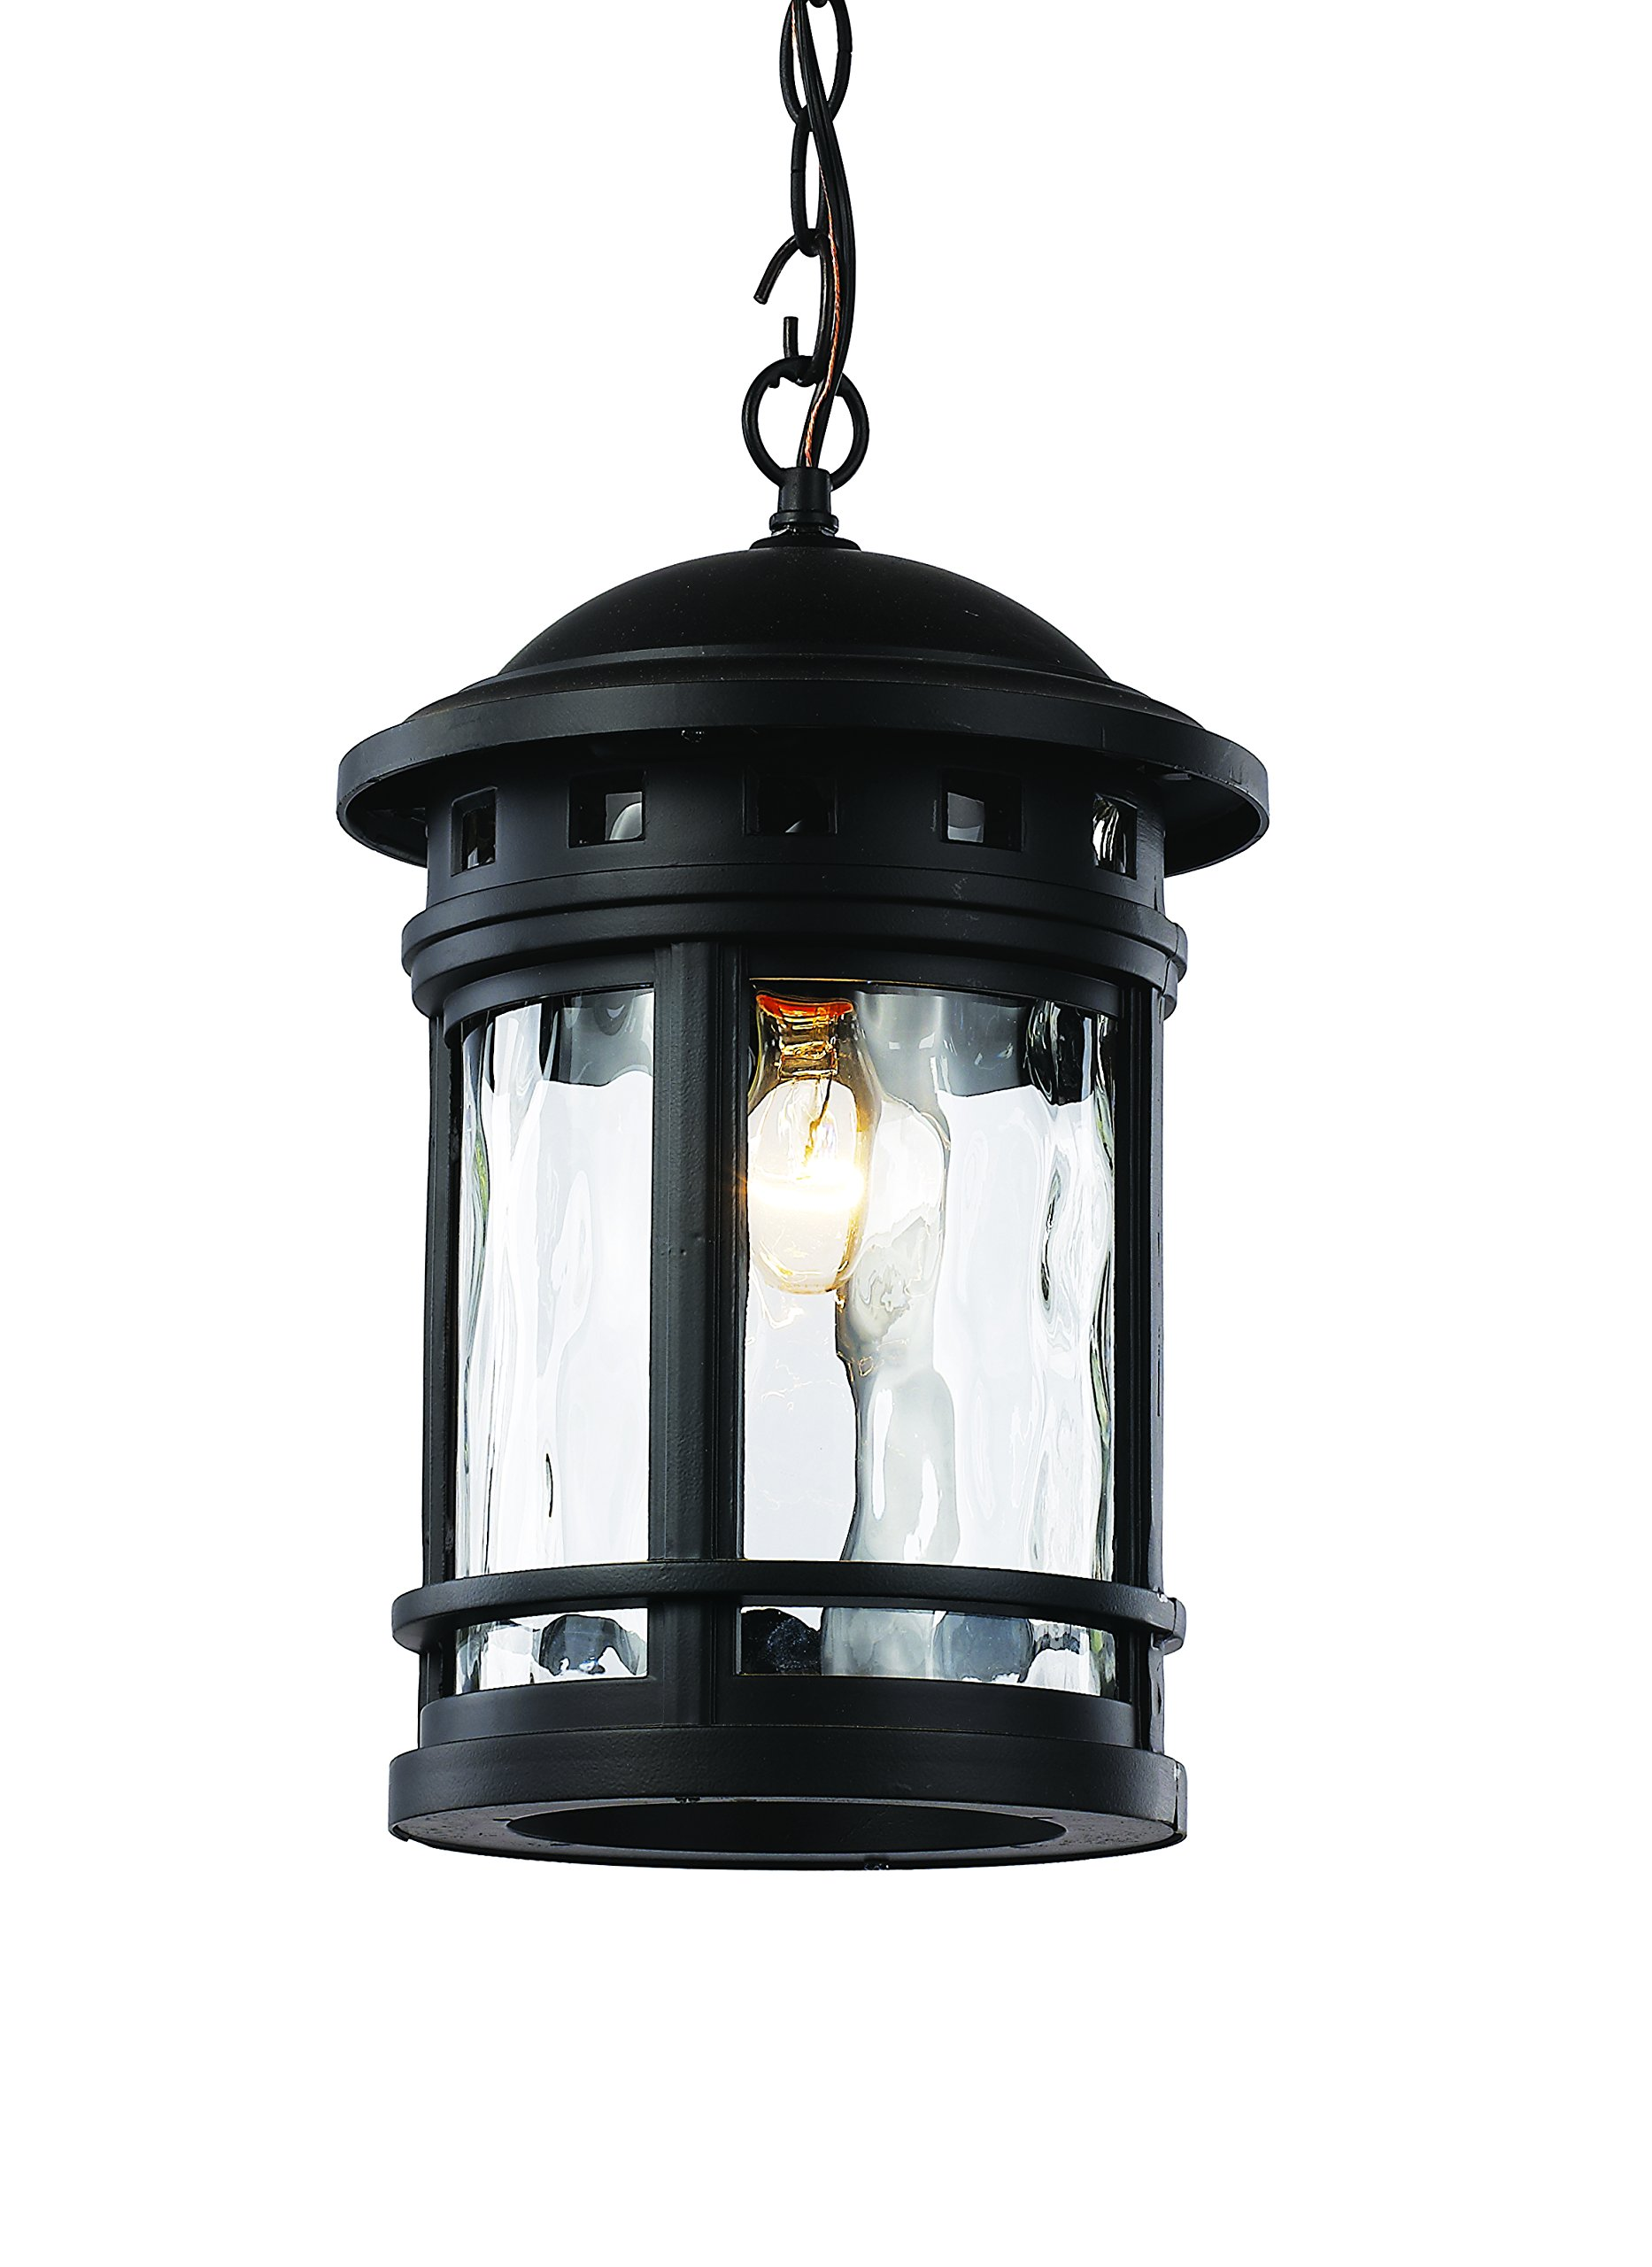 Trans Globe Lighting 40375 BK Outdoor Boardwalk 15'' Hanging Lantern, Black